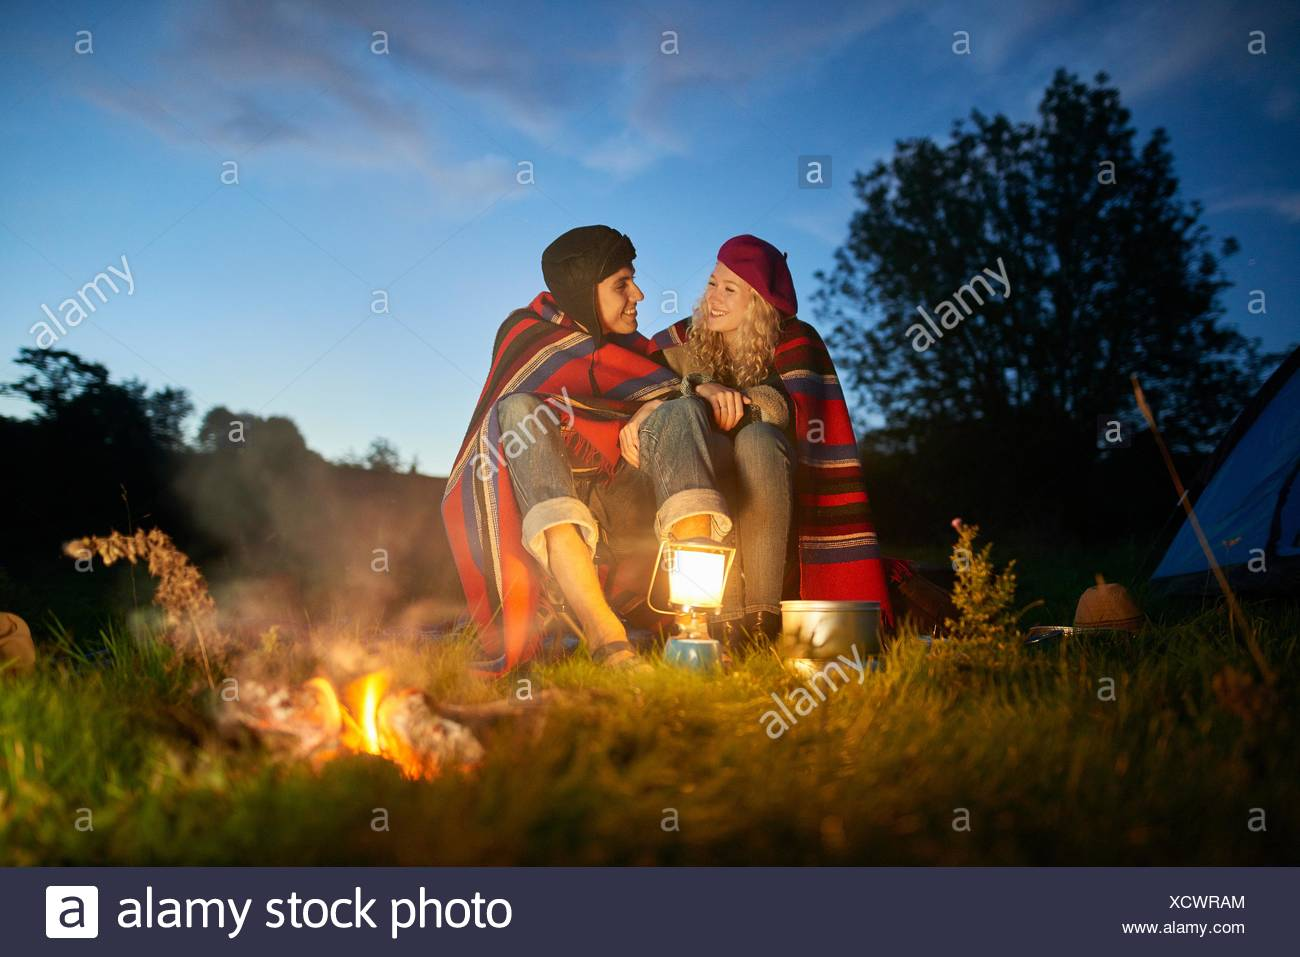 Young camping couple sitting by campfire at dusk Stock Photo